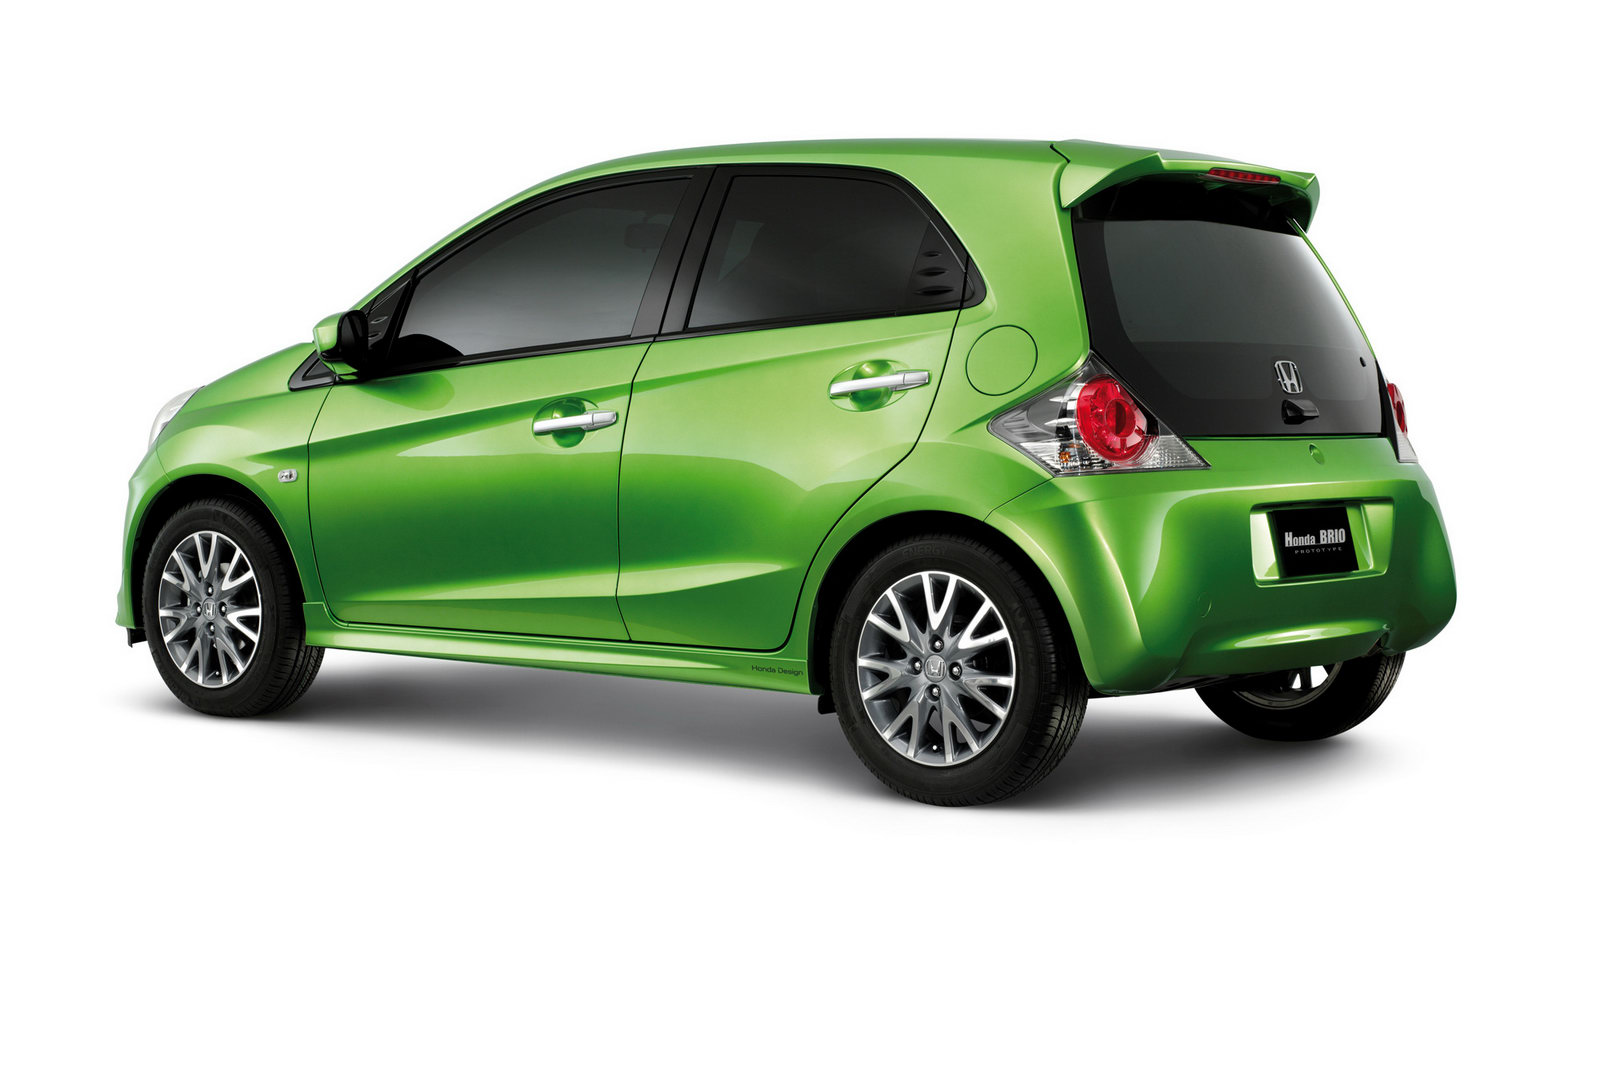 All About Honda 2013 Honda Brio Review